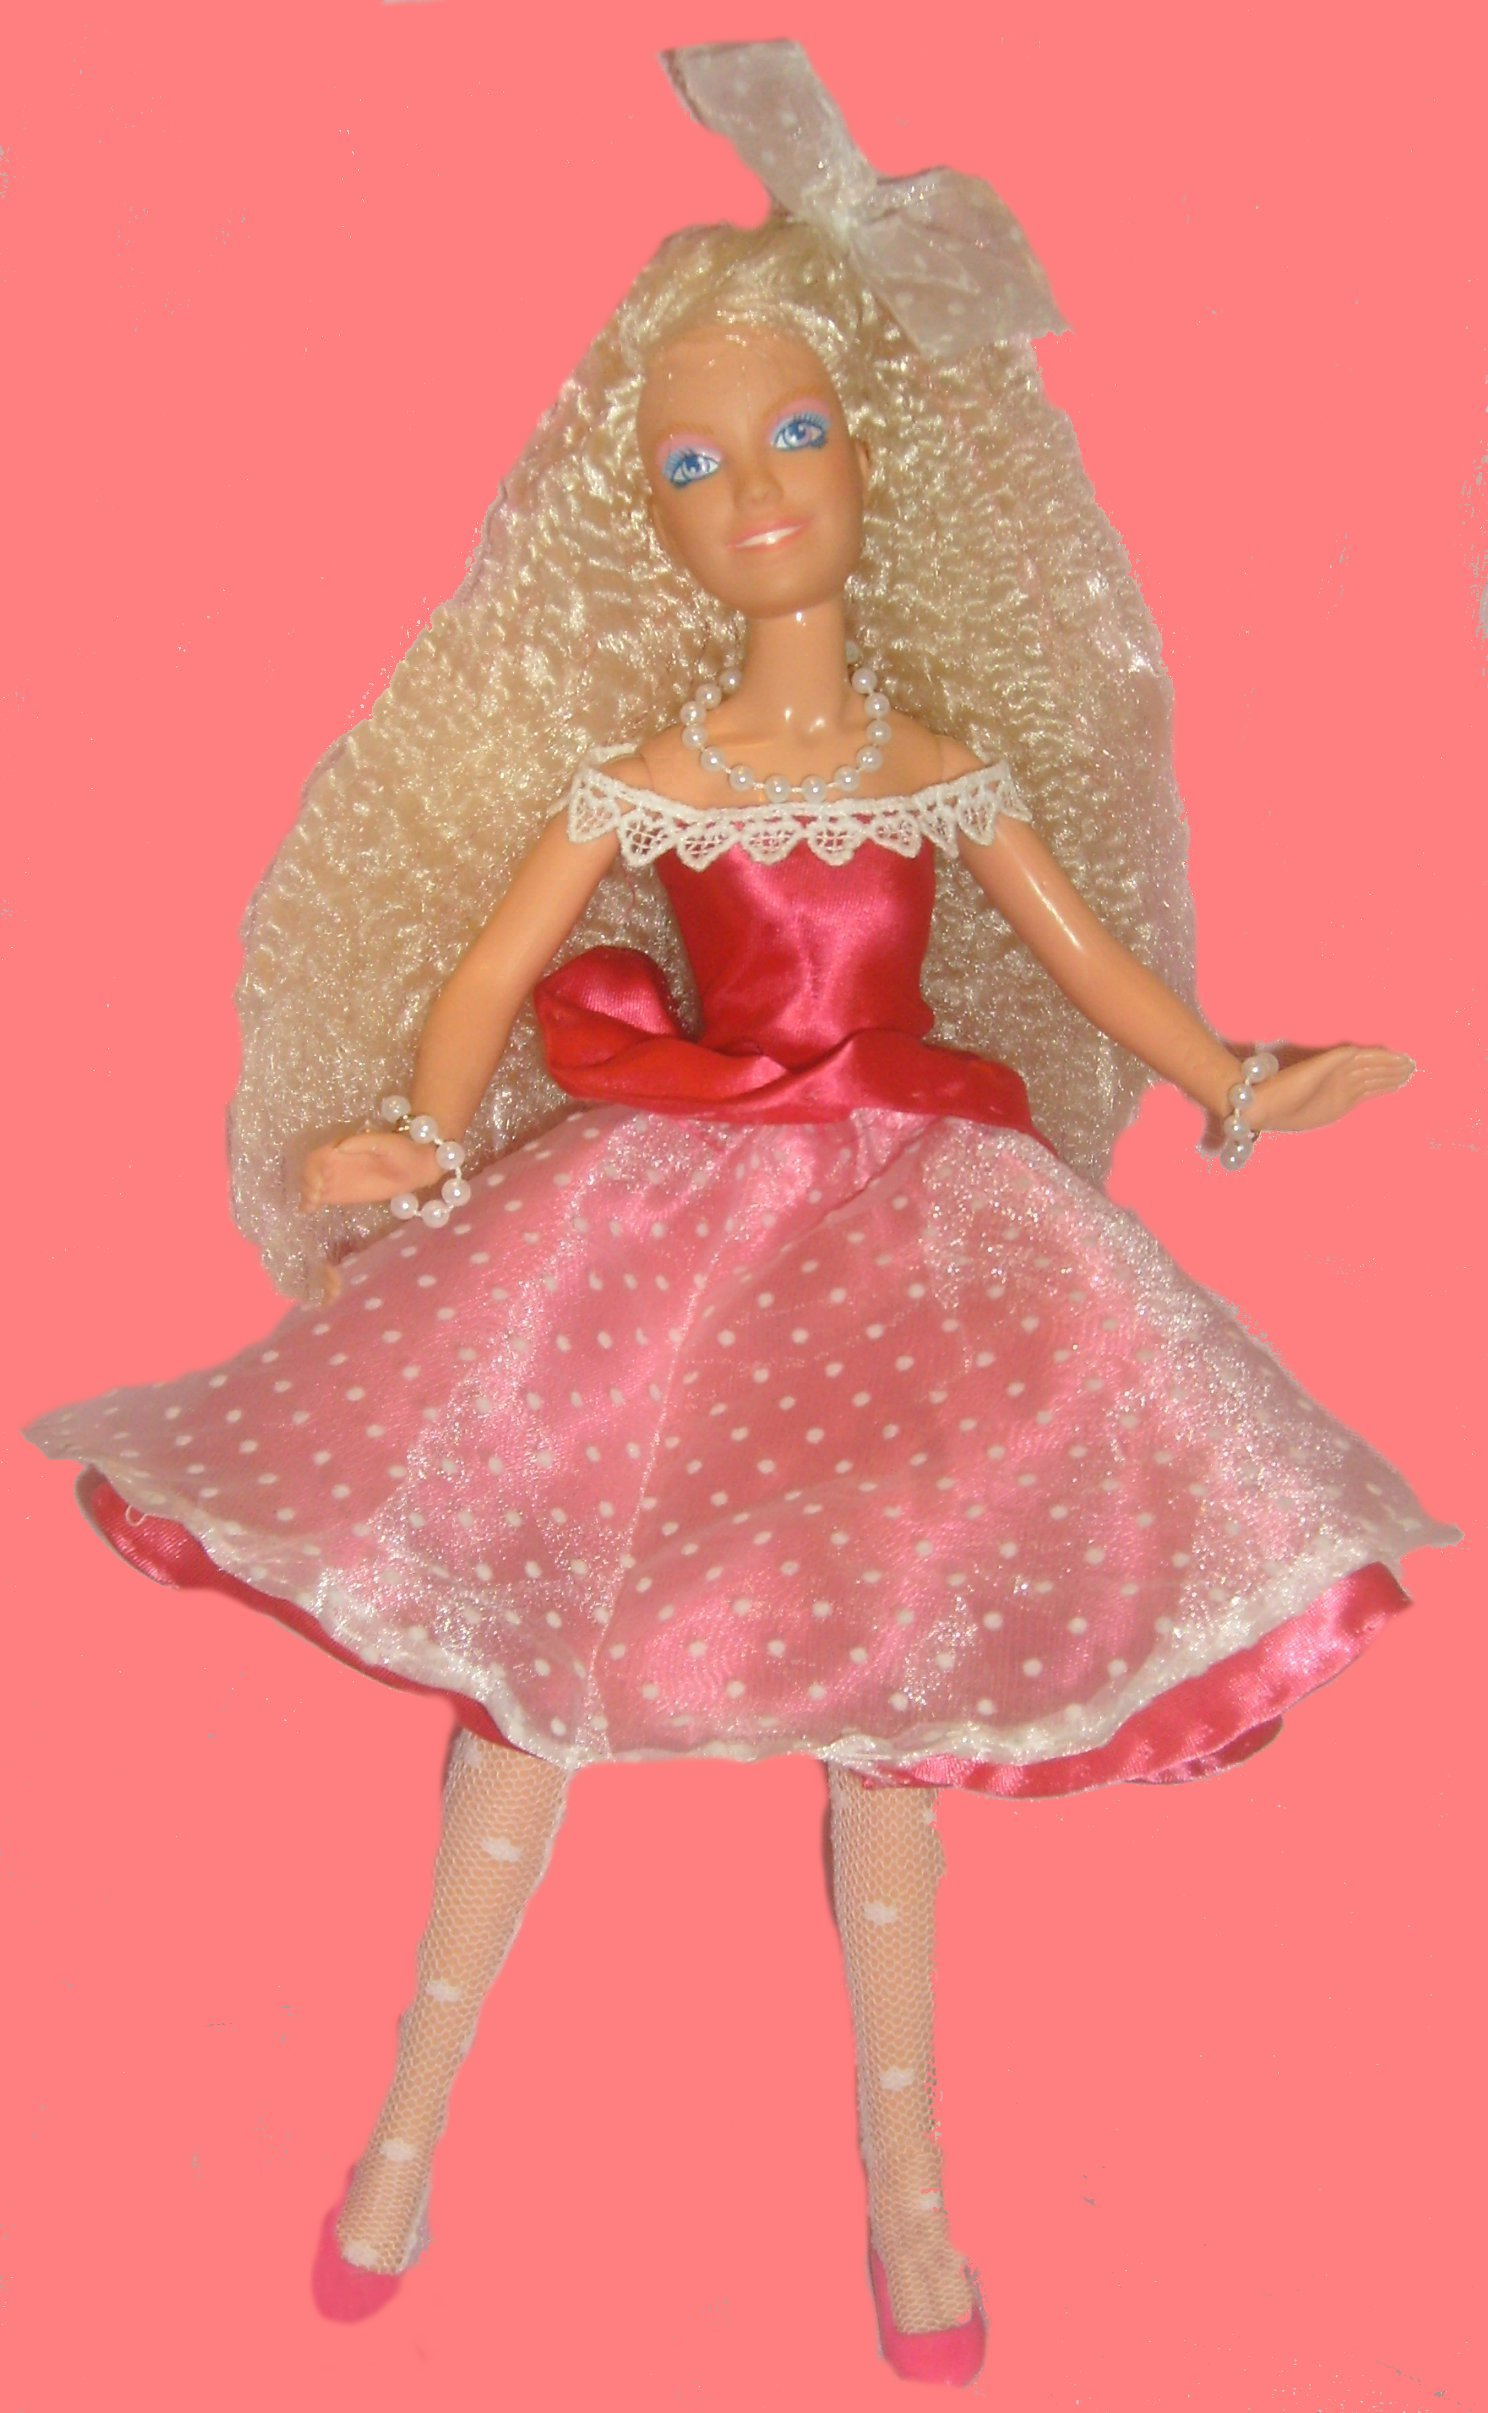 Kimmy s jemstar fashions as seen on tv jem doll fashions that